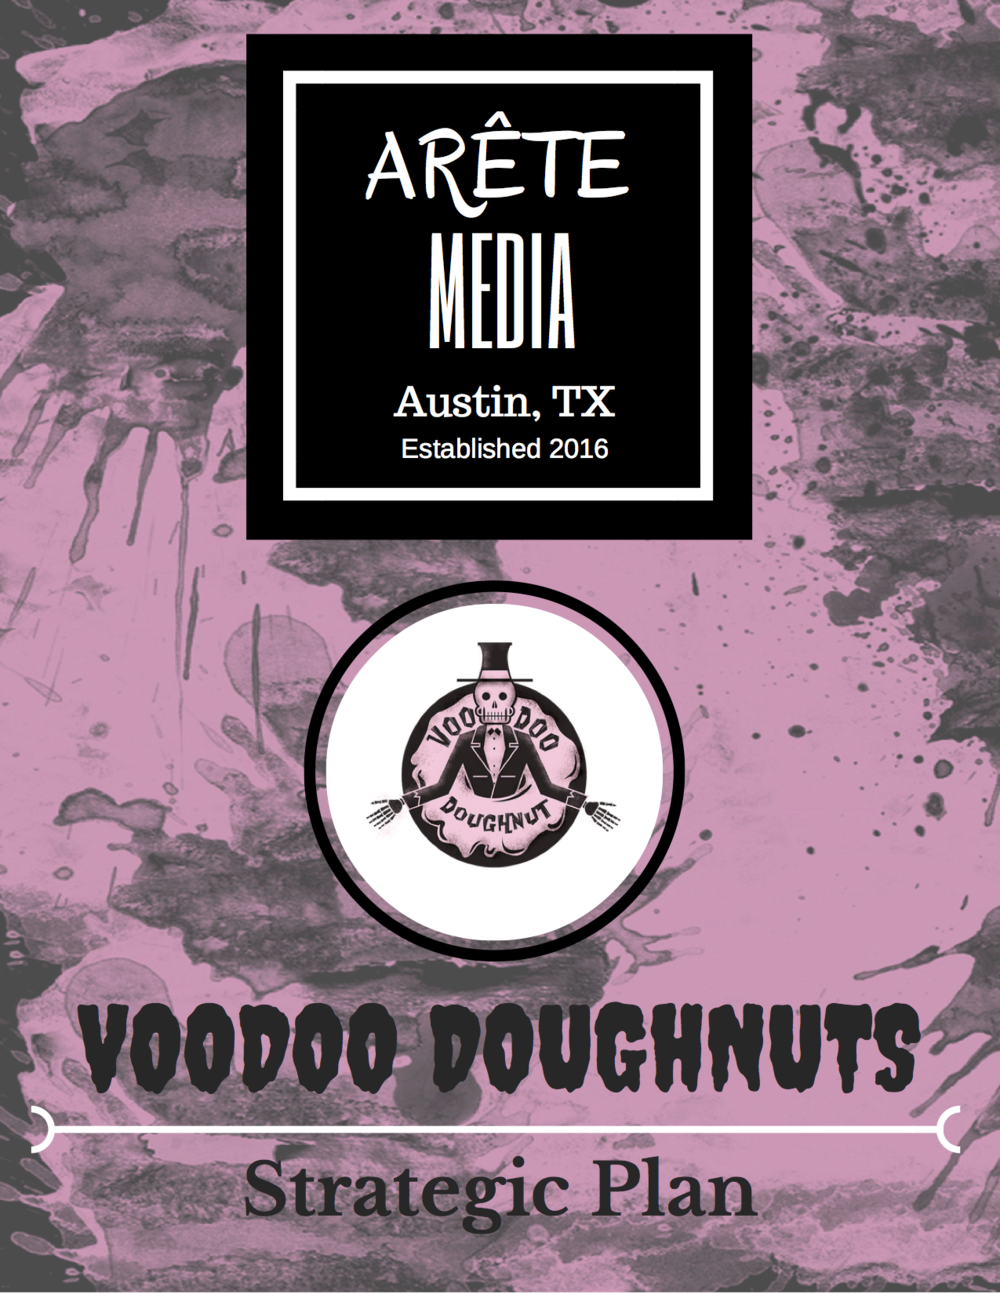 Voodoo Doughnut (dragged).png